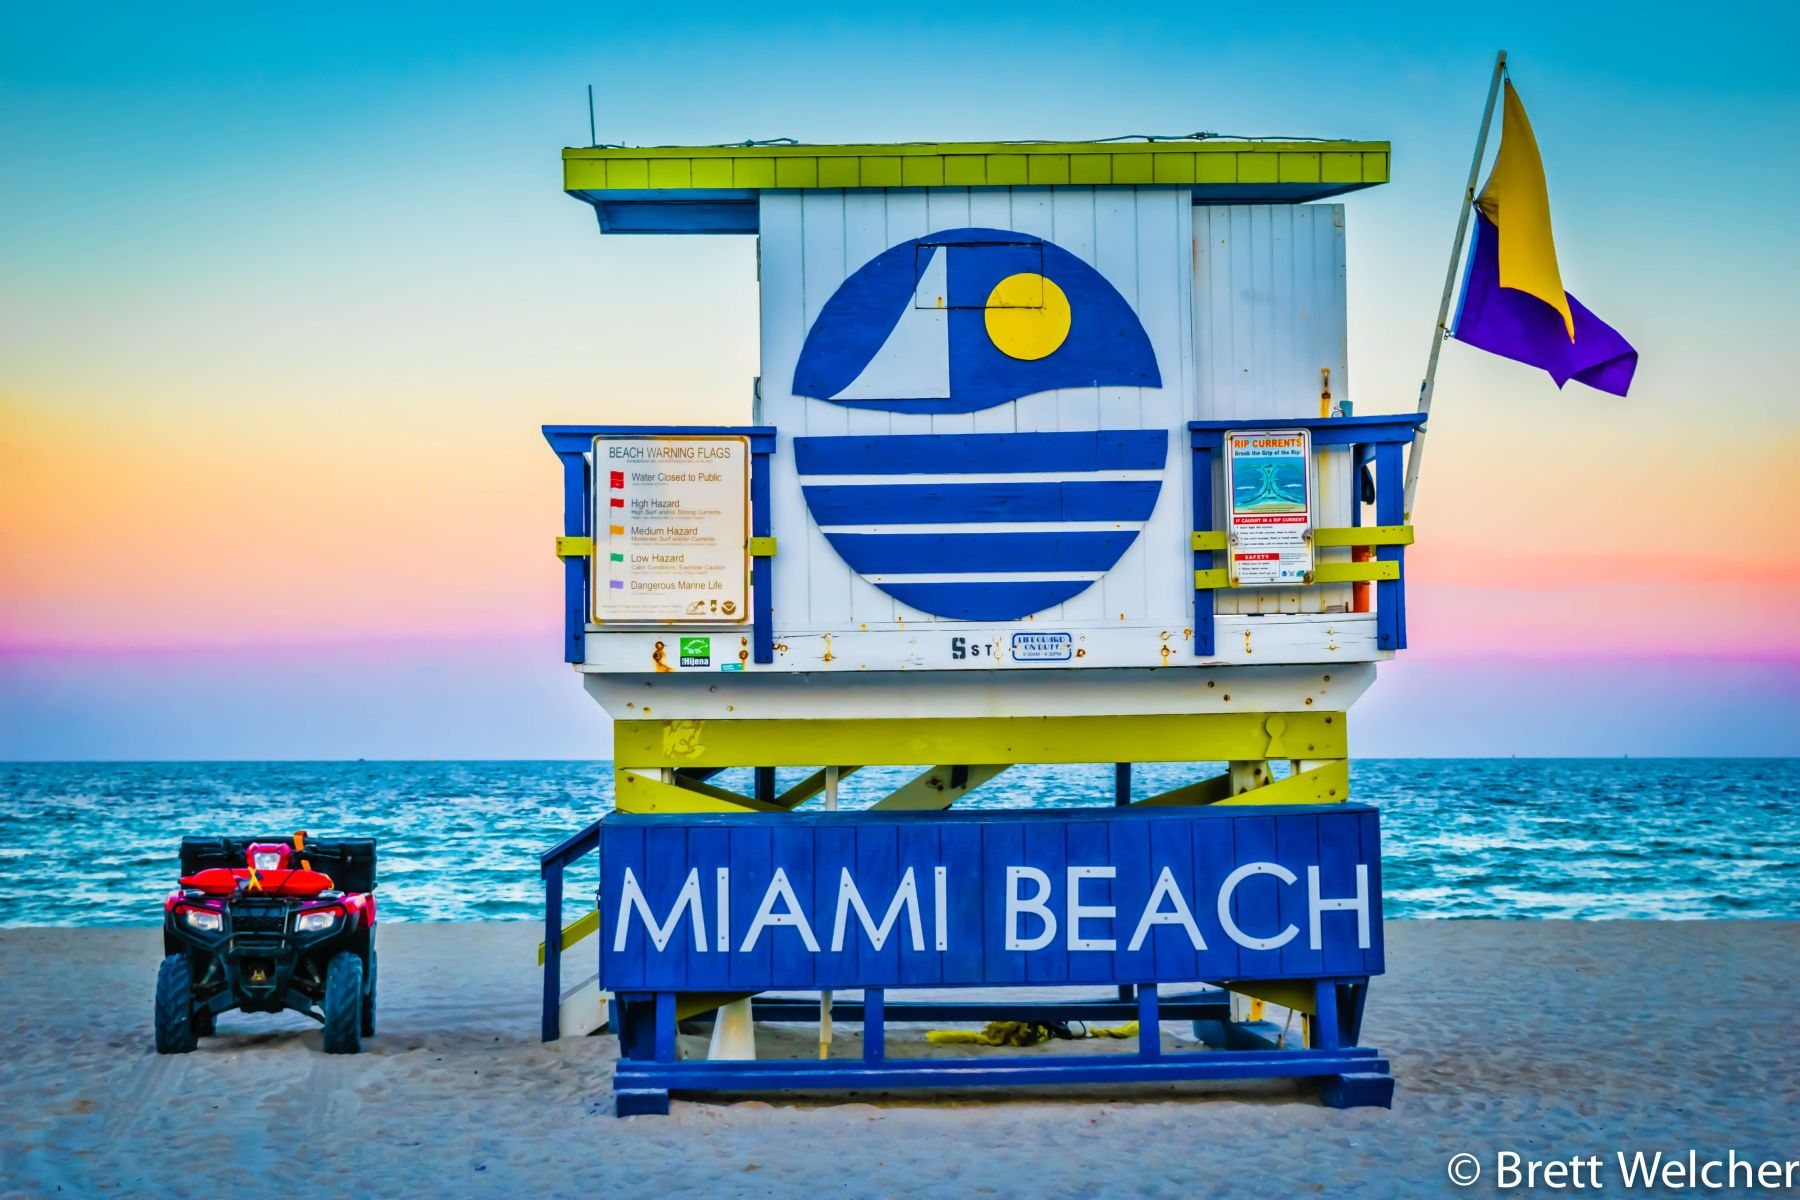 South Beach Lifeguard Towers - Miami Beach, Florida